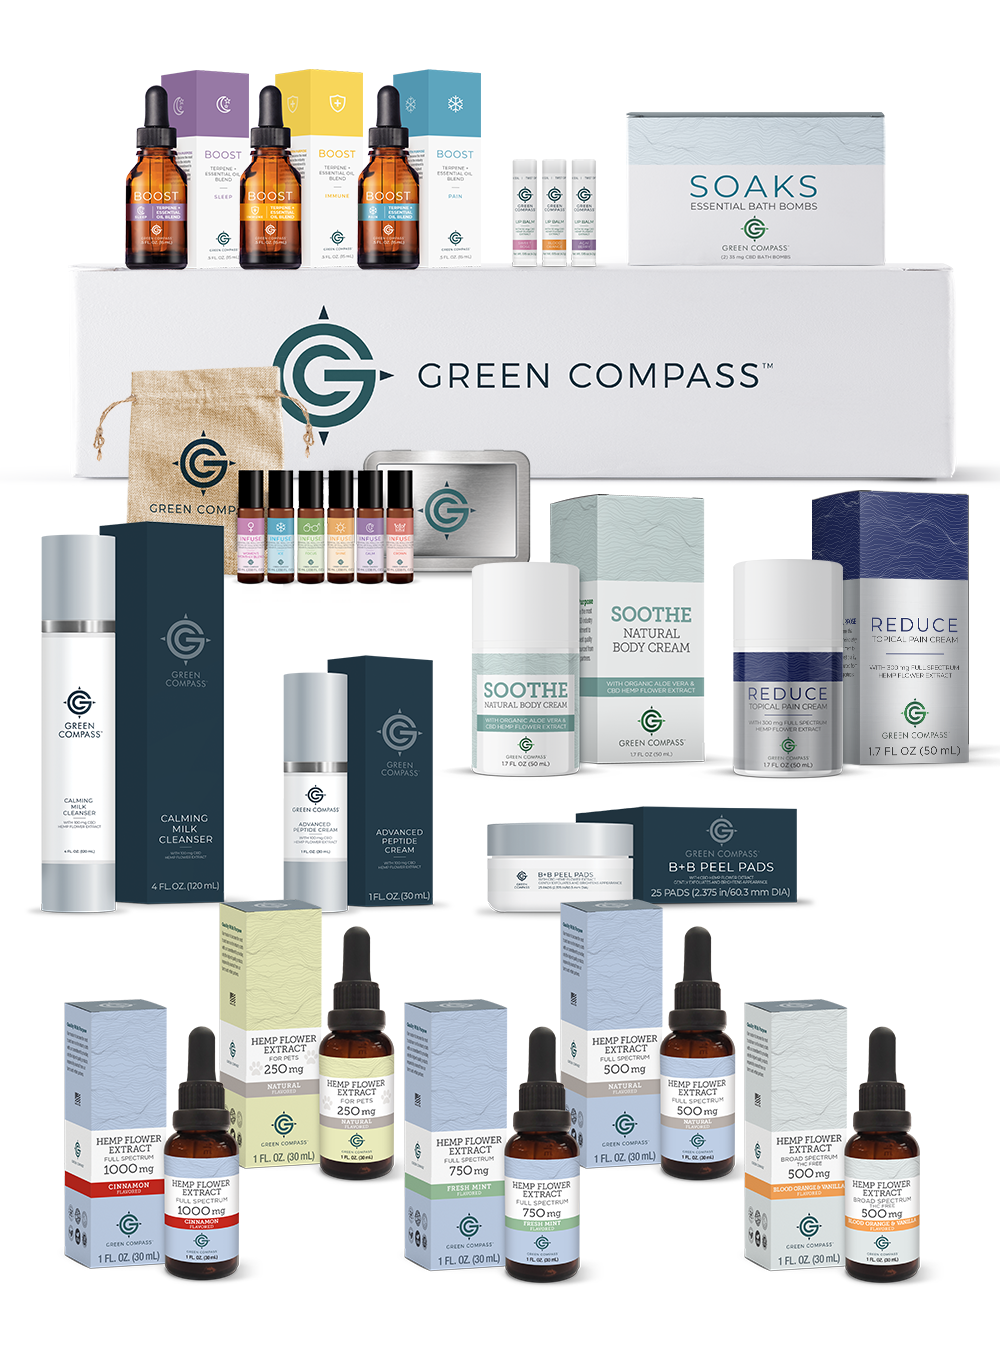 Green Compass Review - Green Compass products